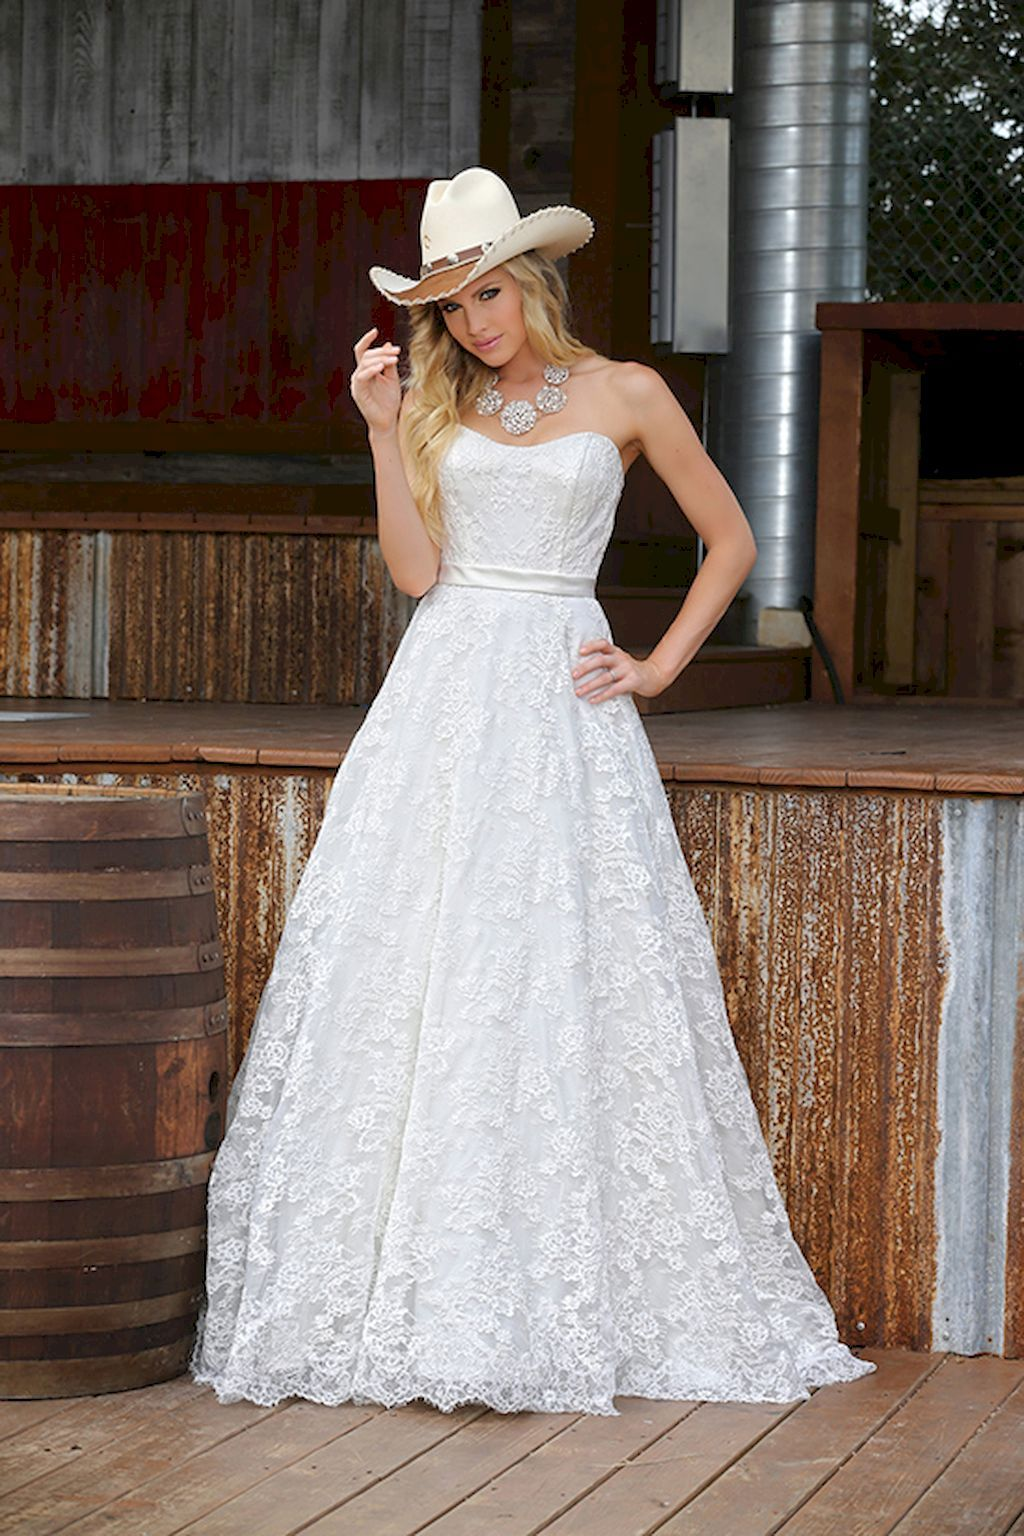 46 Elegant Vow Renewal Country Wedding Dresses Ideas